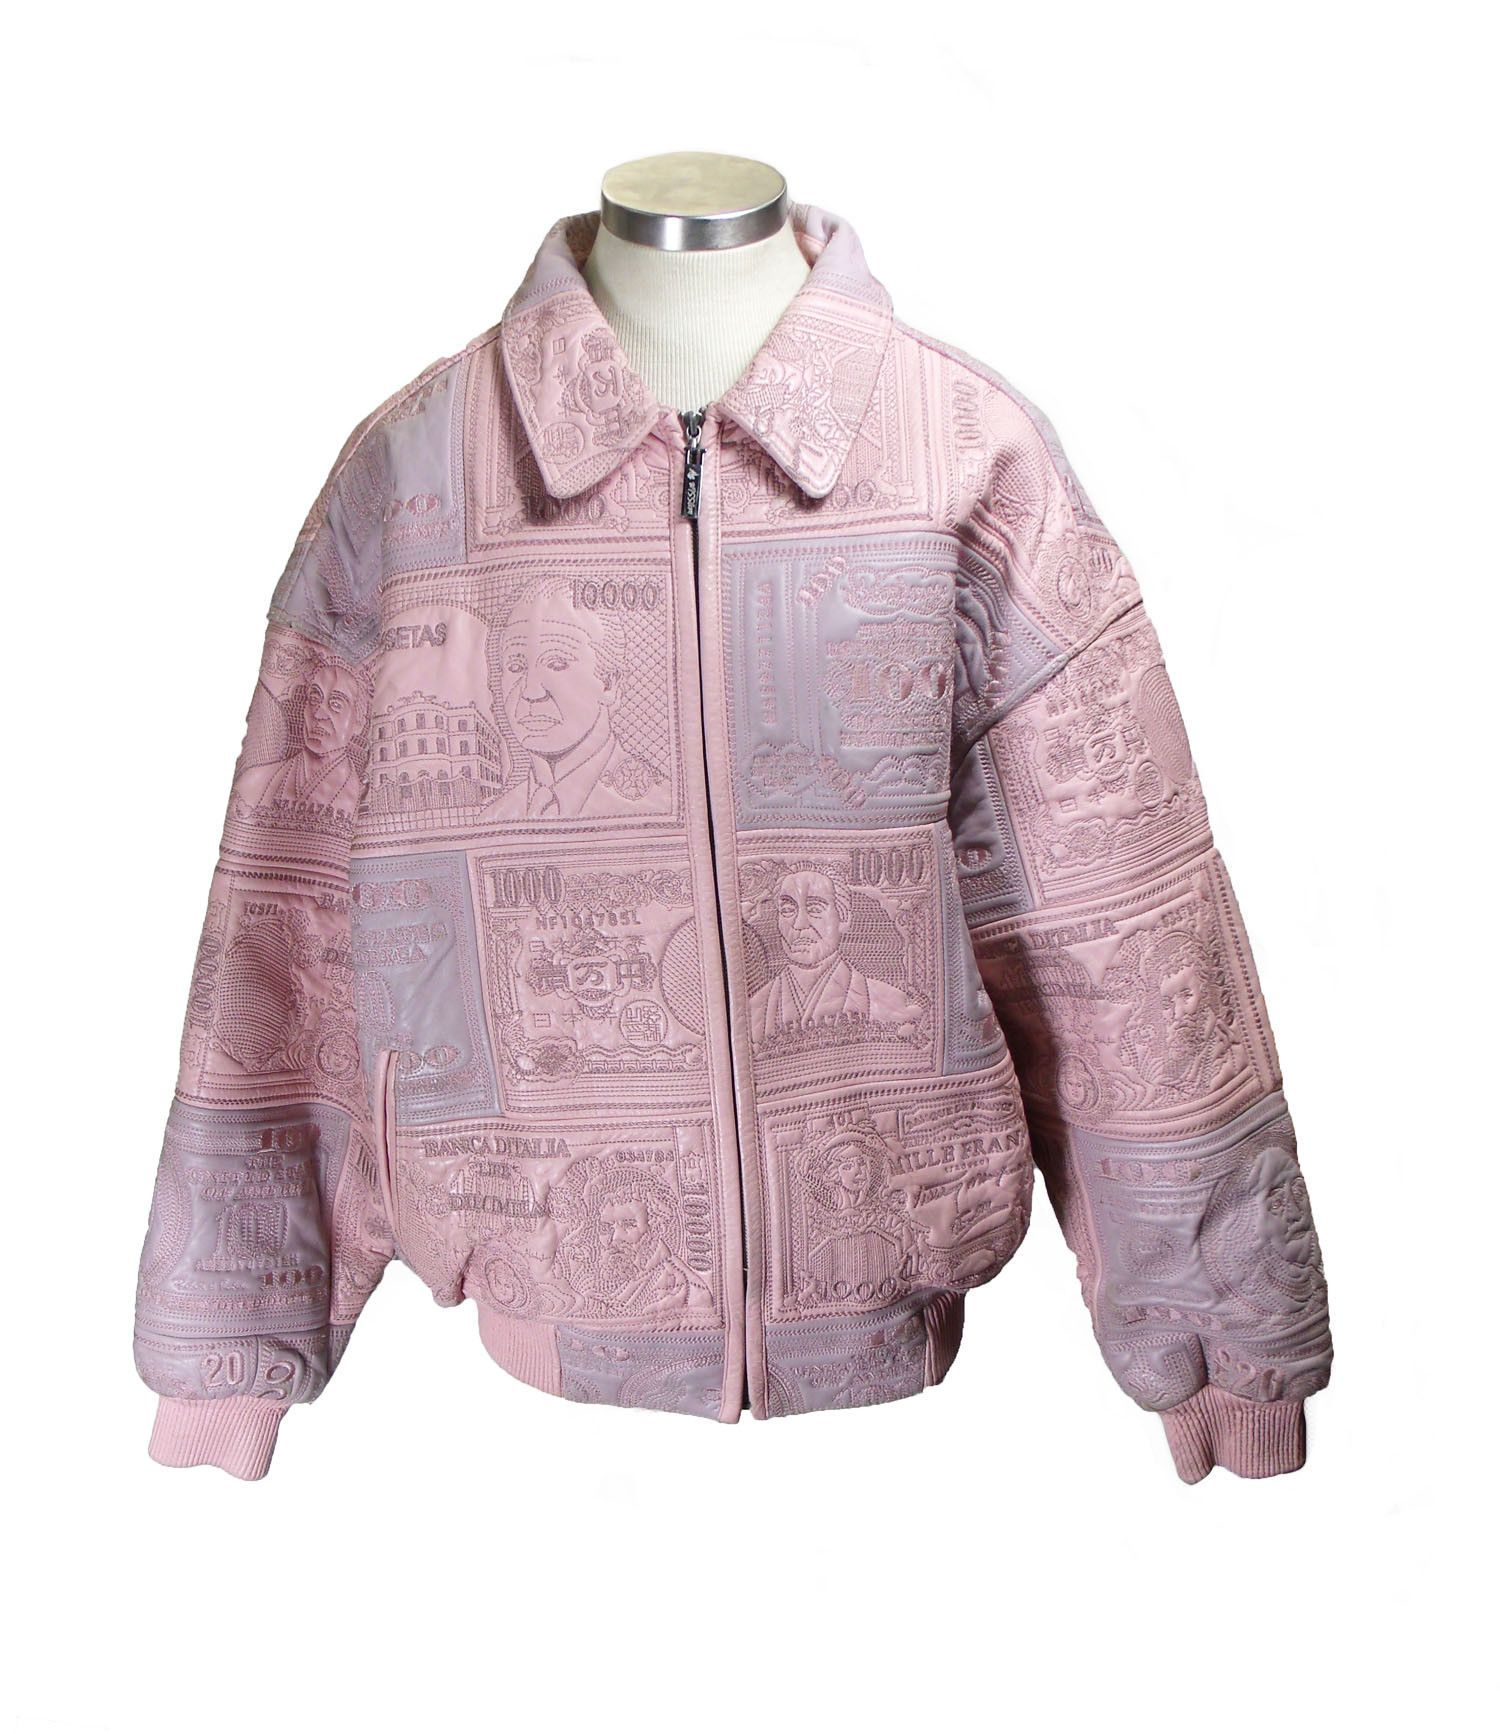 dc0f4bf13 Al Wissam Pink Women's Currency Leather Coat Size XL | Products ...